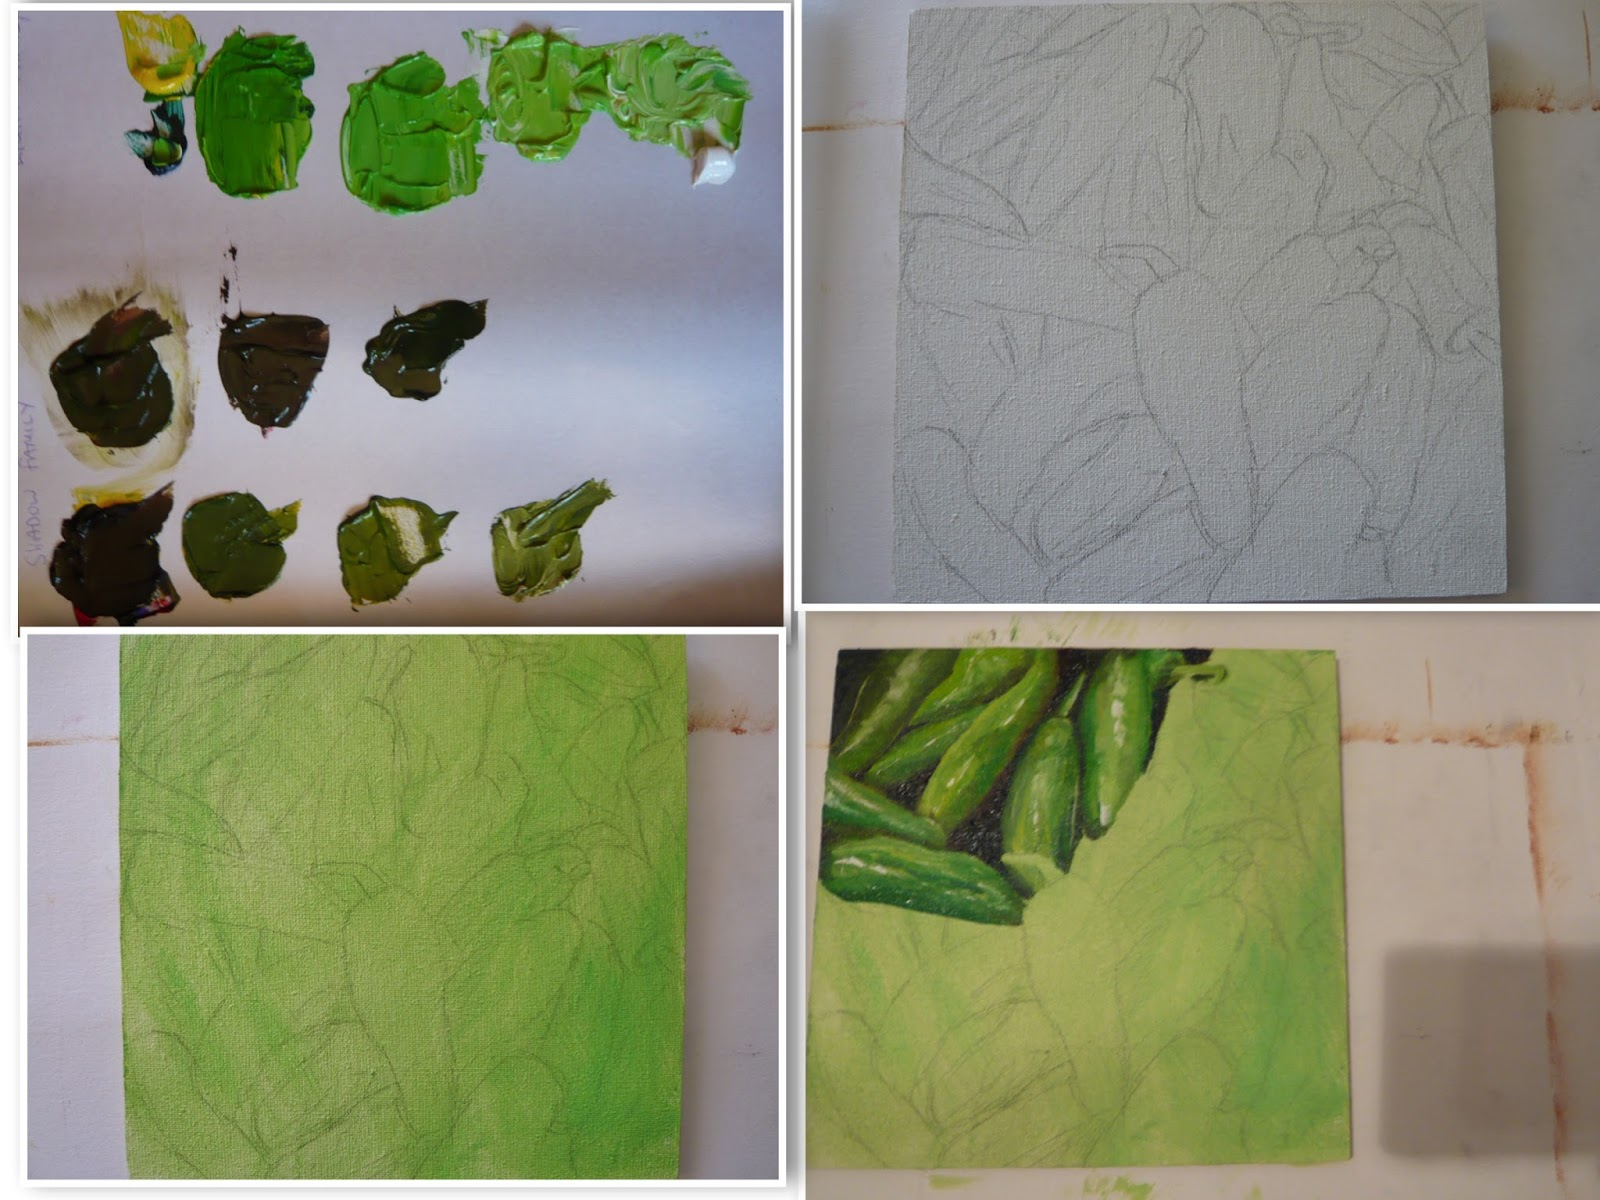 work-in-progress or WIP of green chilli pepper oil painting